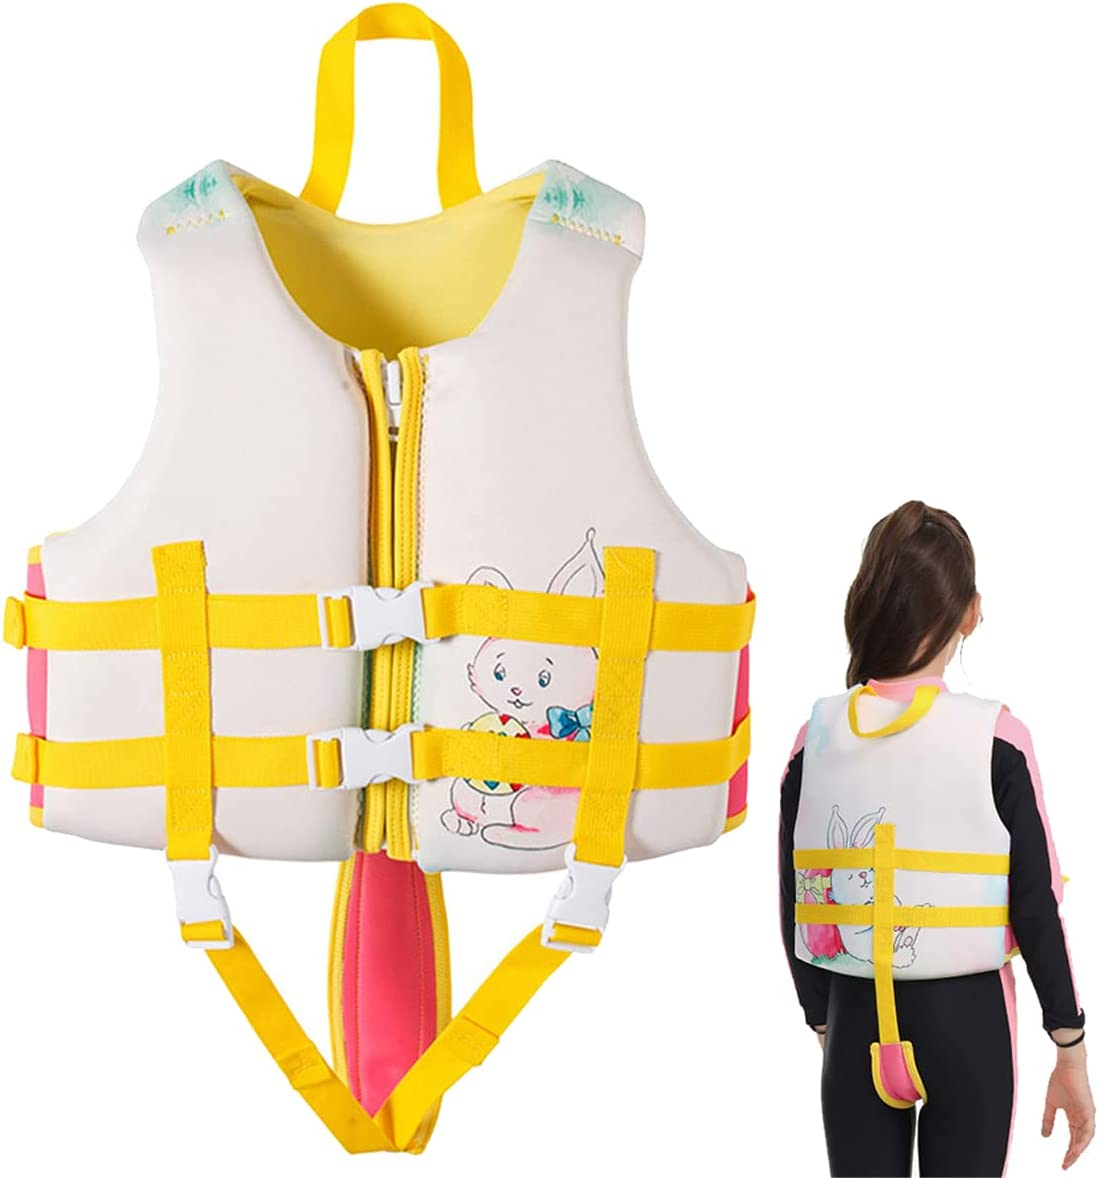 HWZZ Baby Kids Super sale period limited Swim Vest - Ranking TOP5 Buoyancy Aid Traini Swimming Learning